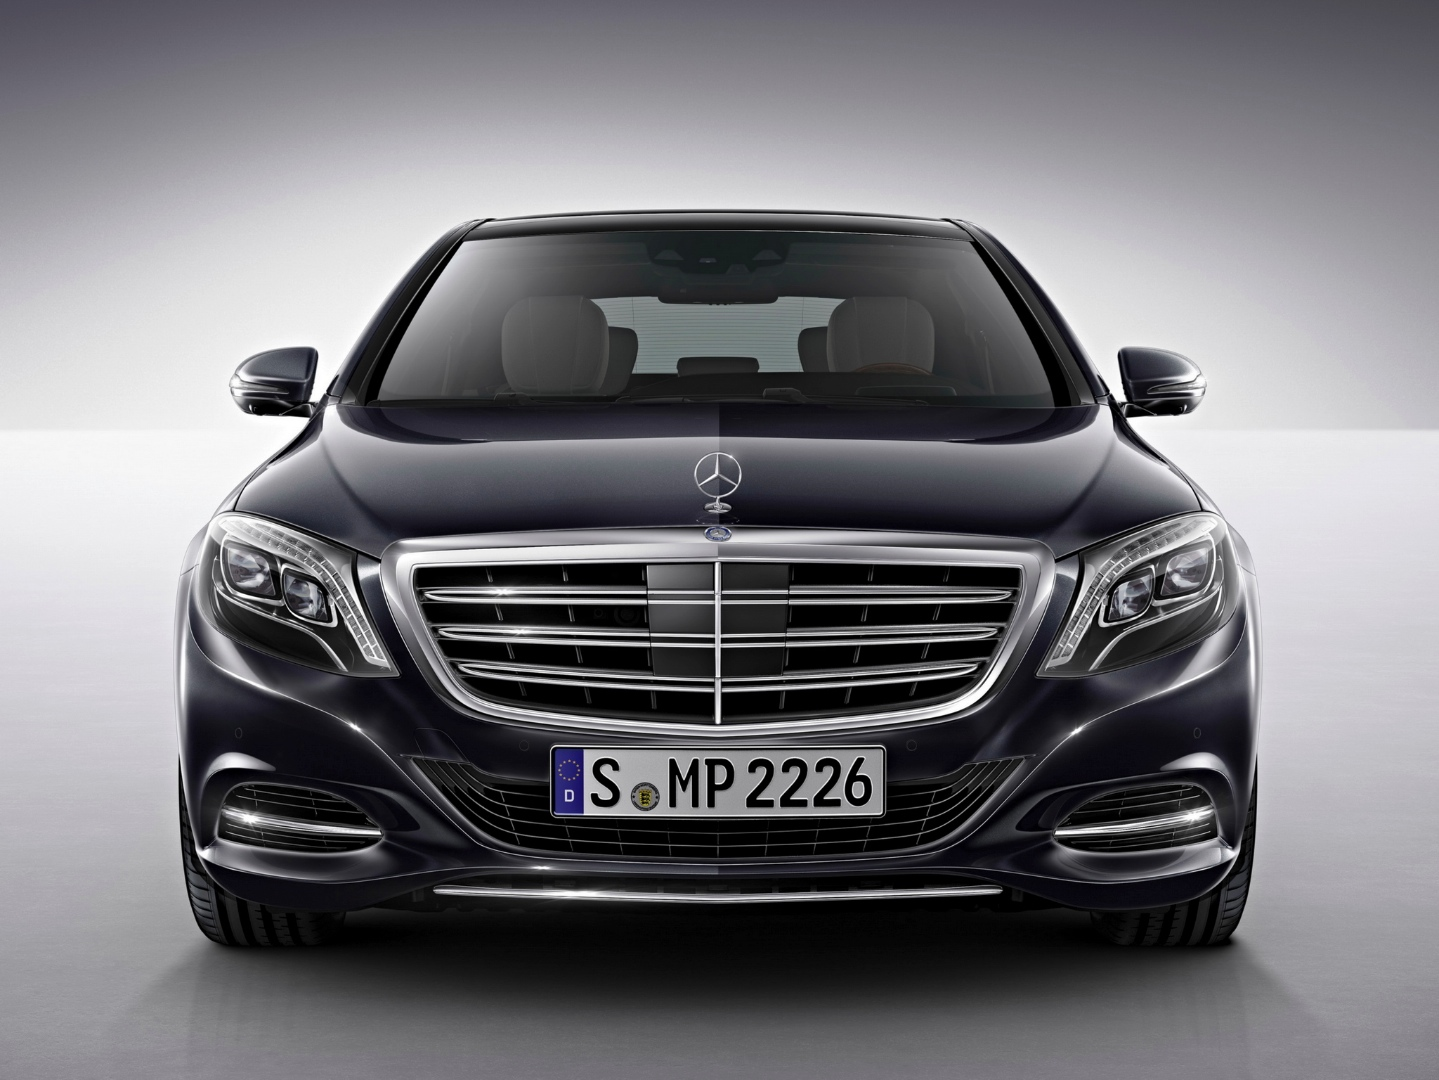 Luxury Vehicle: Mercedes-Benz S-Class Is 2014 World Luxury Car Of The Year